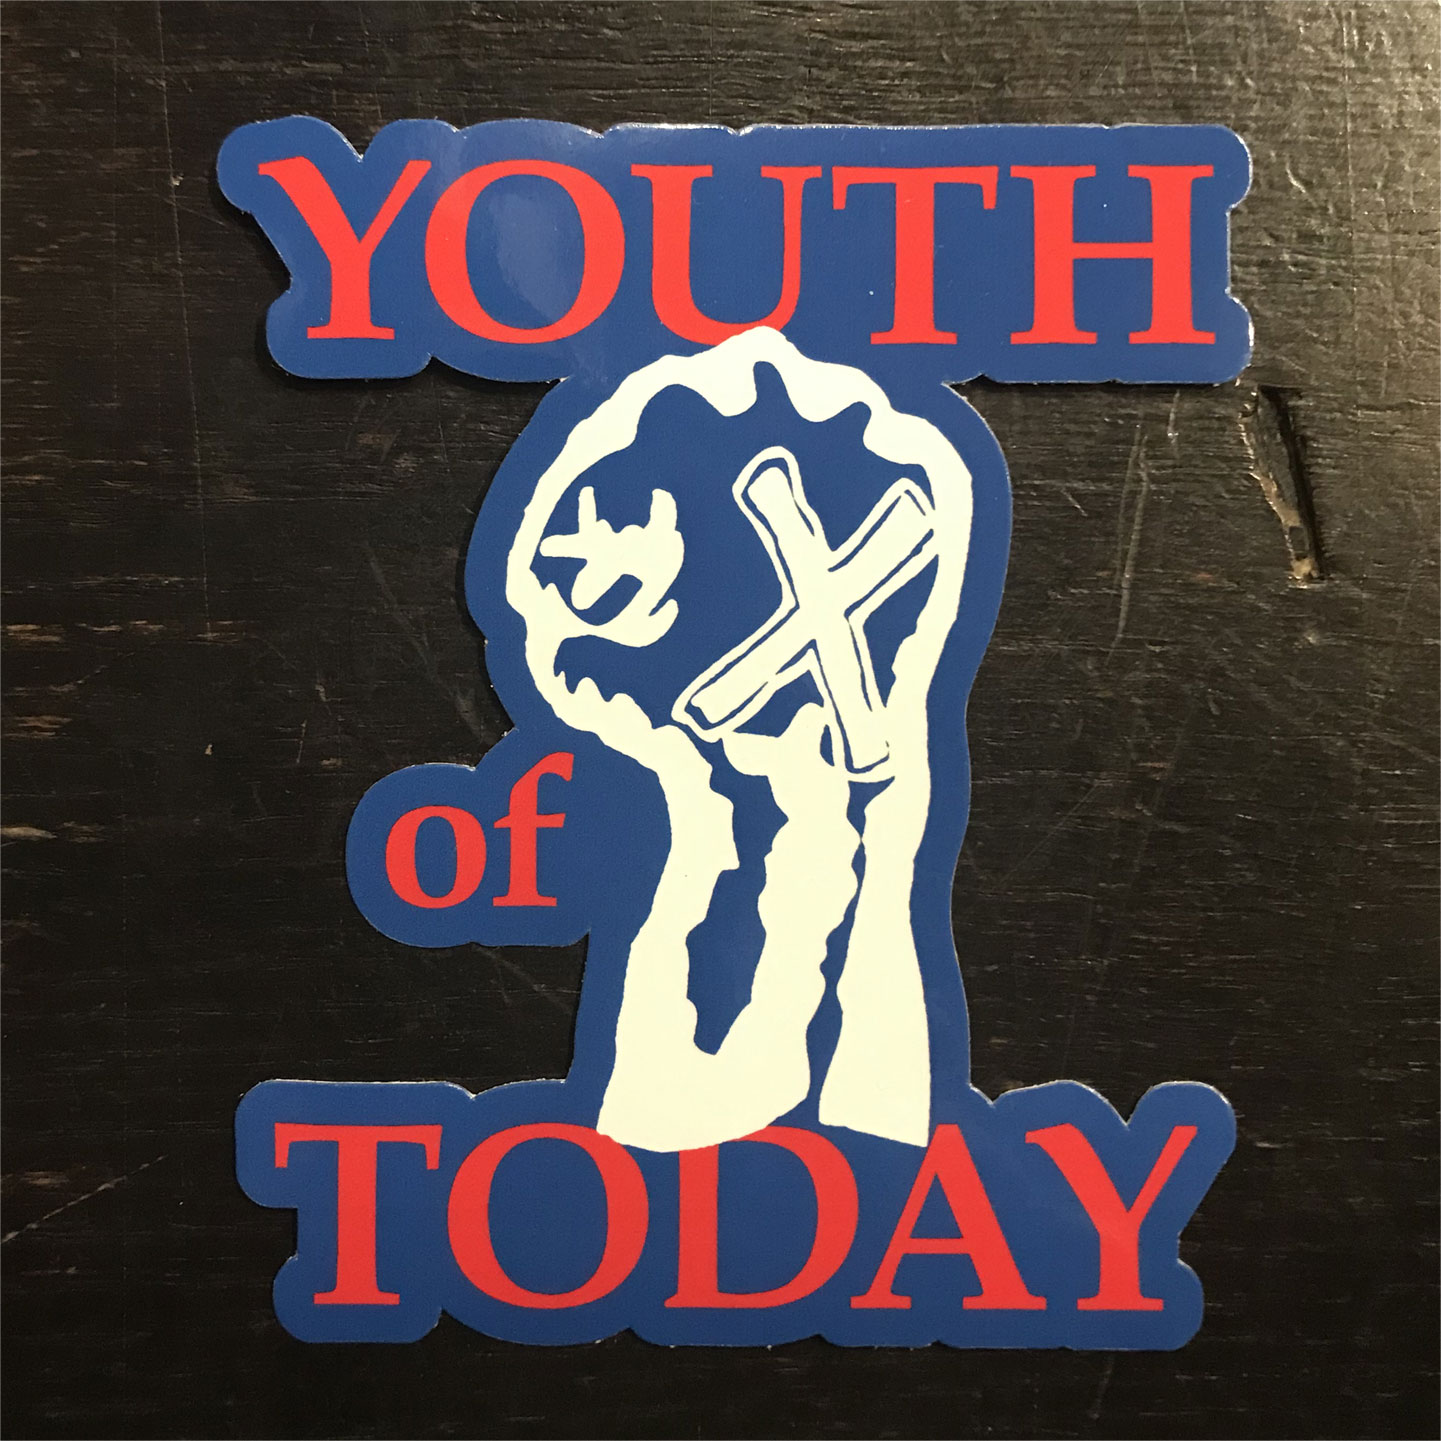 YOUTH OF TODAY ステッカー FISTダイカット